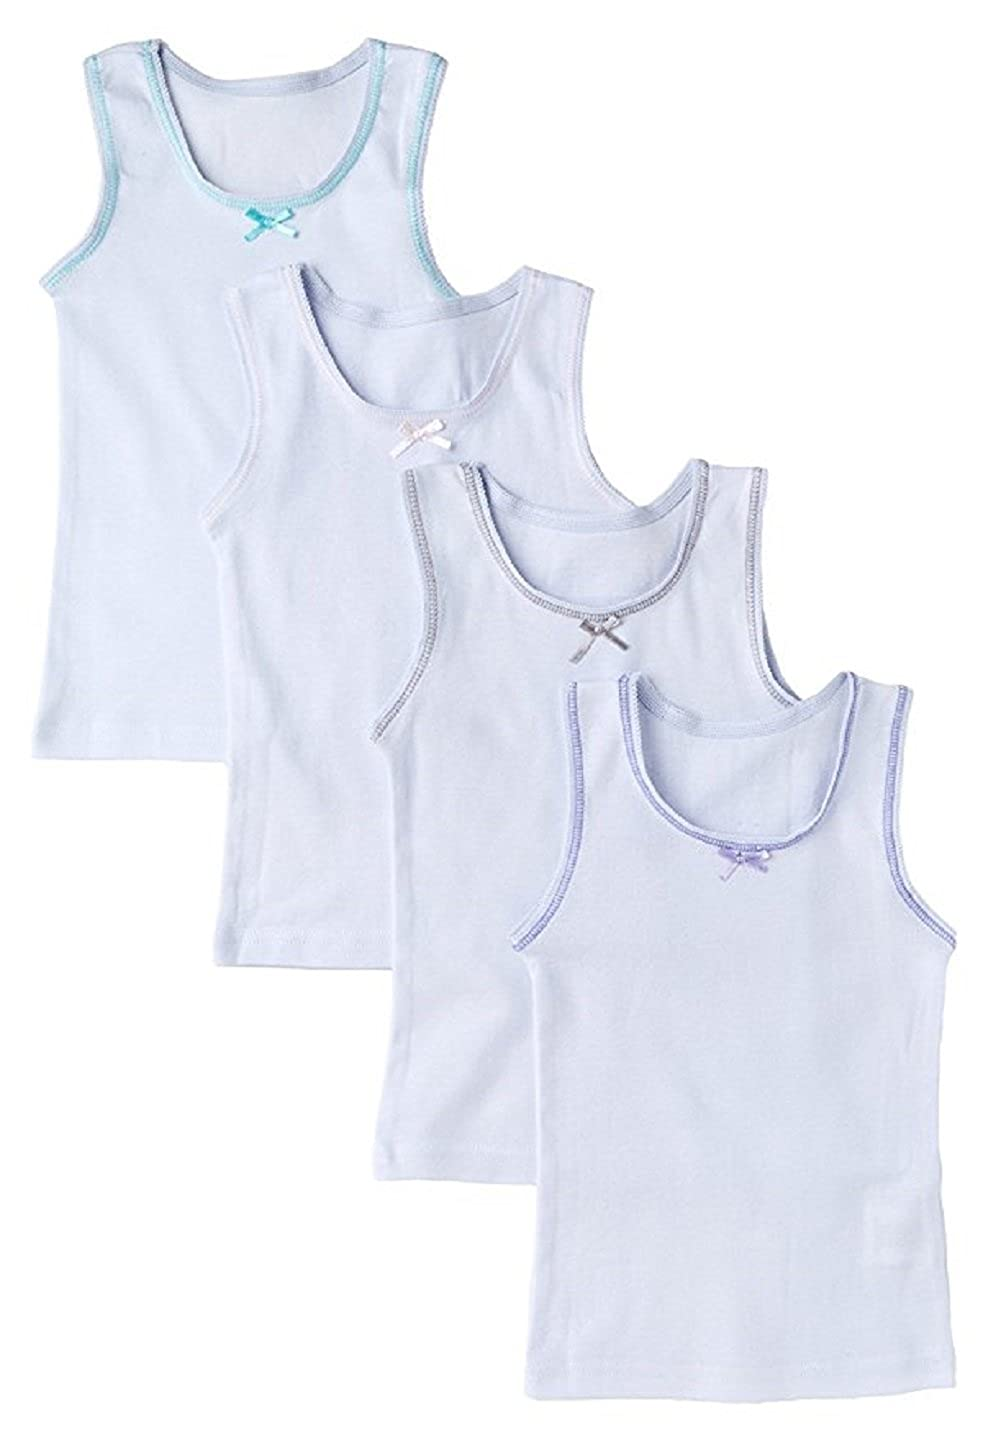 Better Super Quality,Soft Comfortable Girls Undershirt 100% Cotton Tank Tops